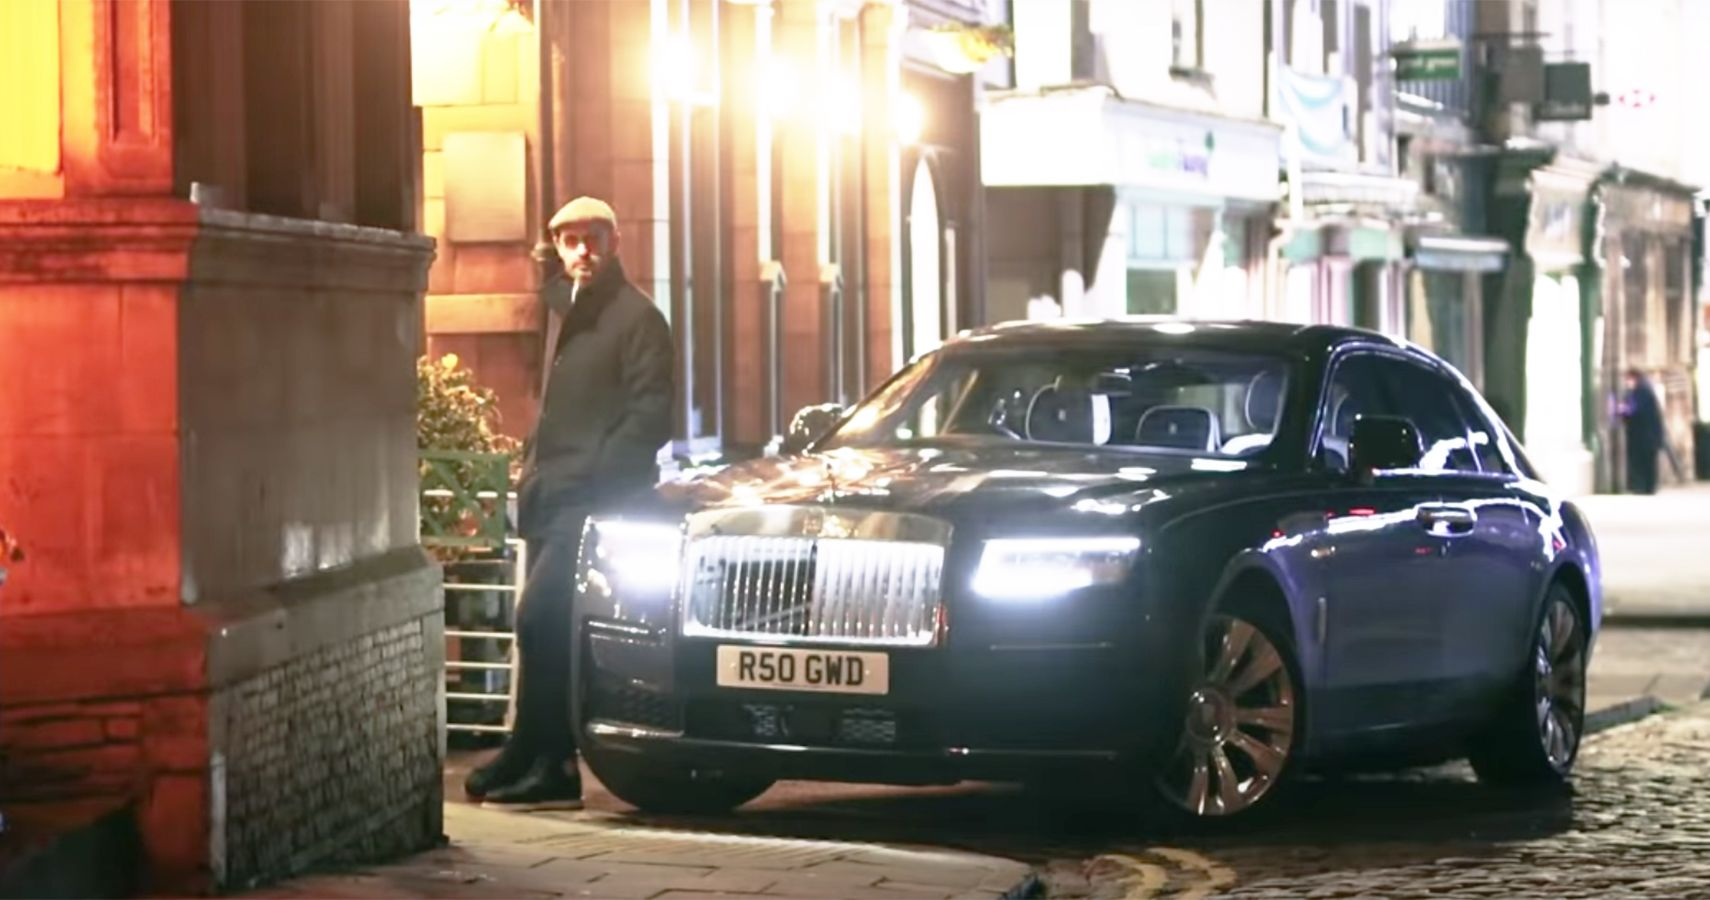 2021 Rolls-Royce Ghost Review Gets Surprise Visit From The Ghost Of Christmas Past